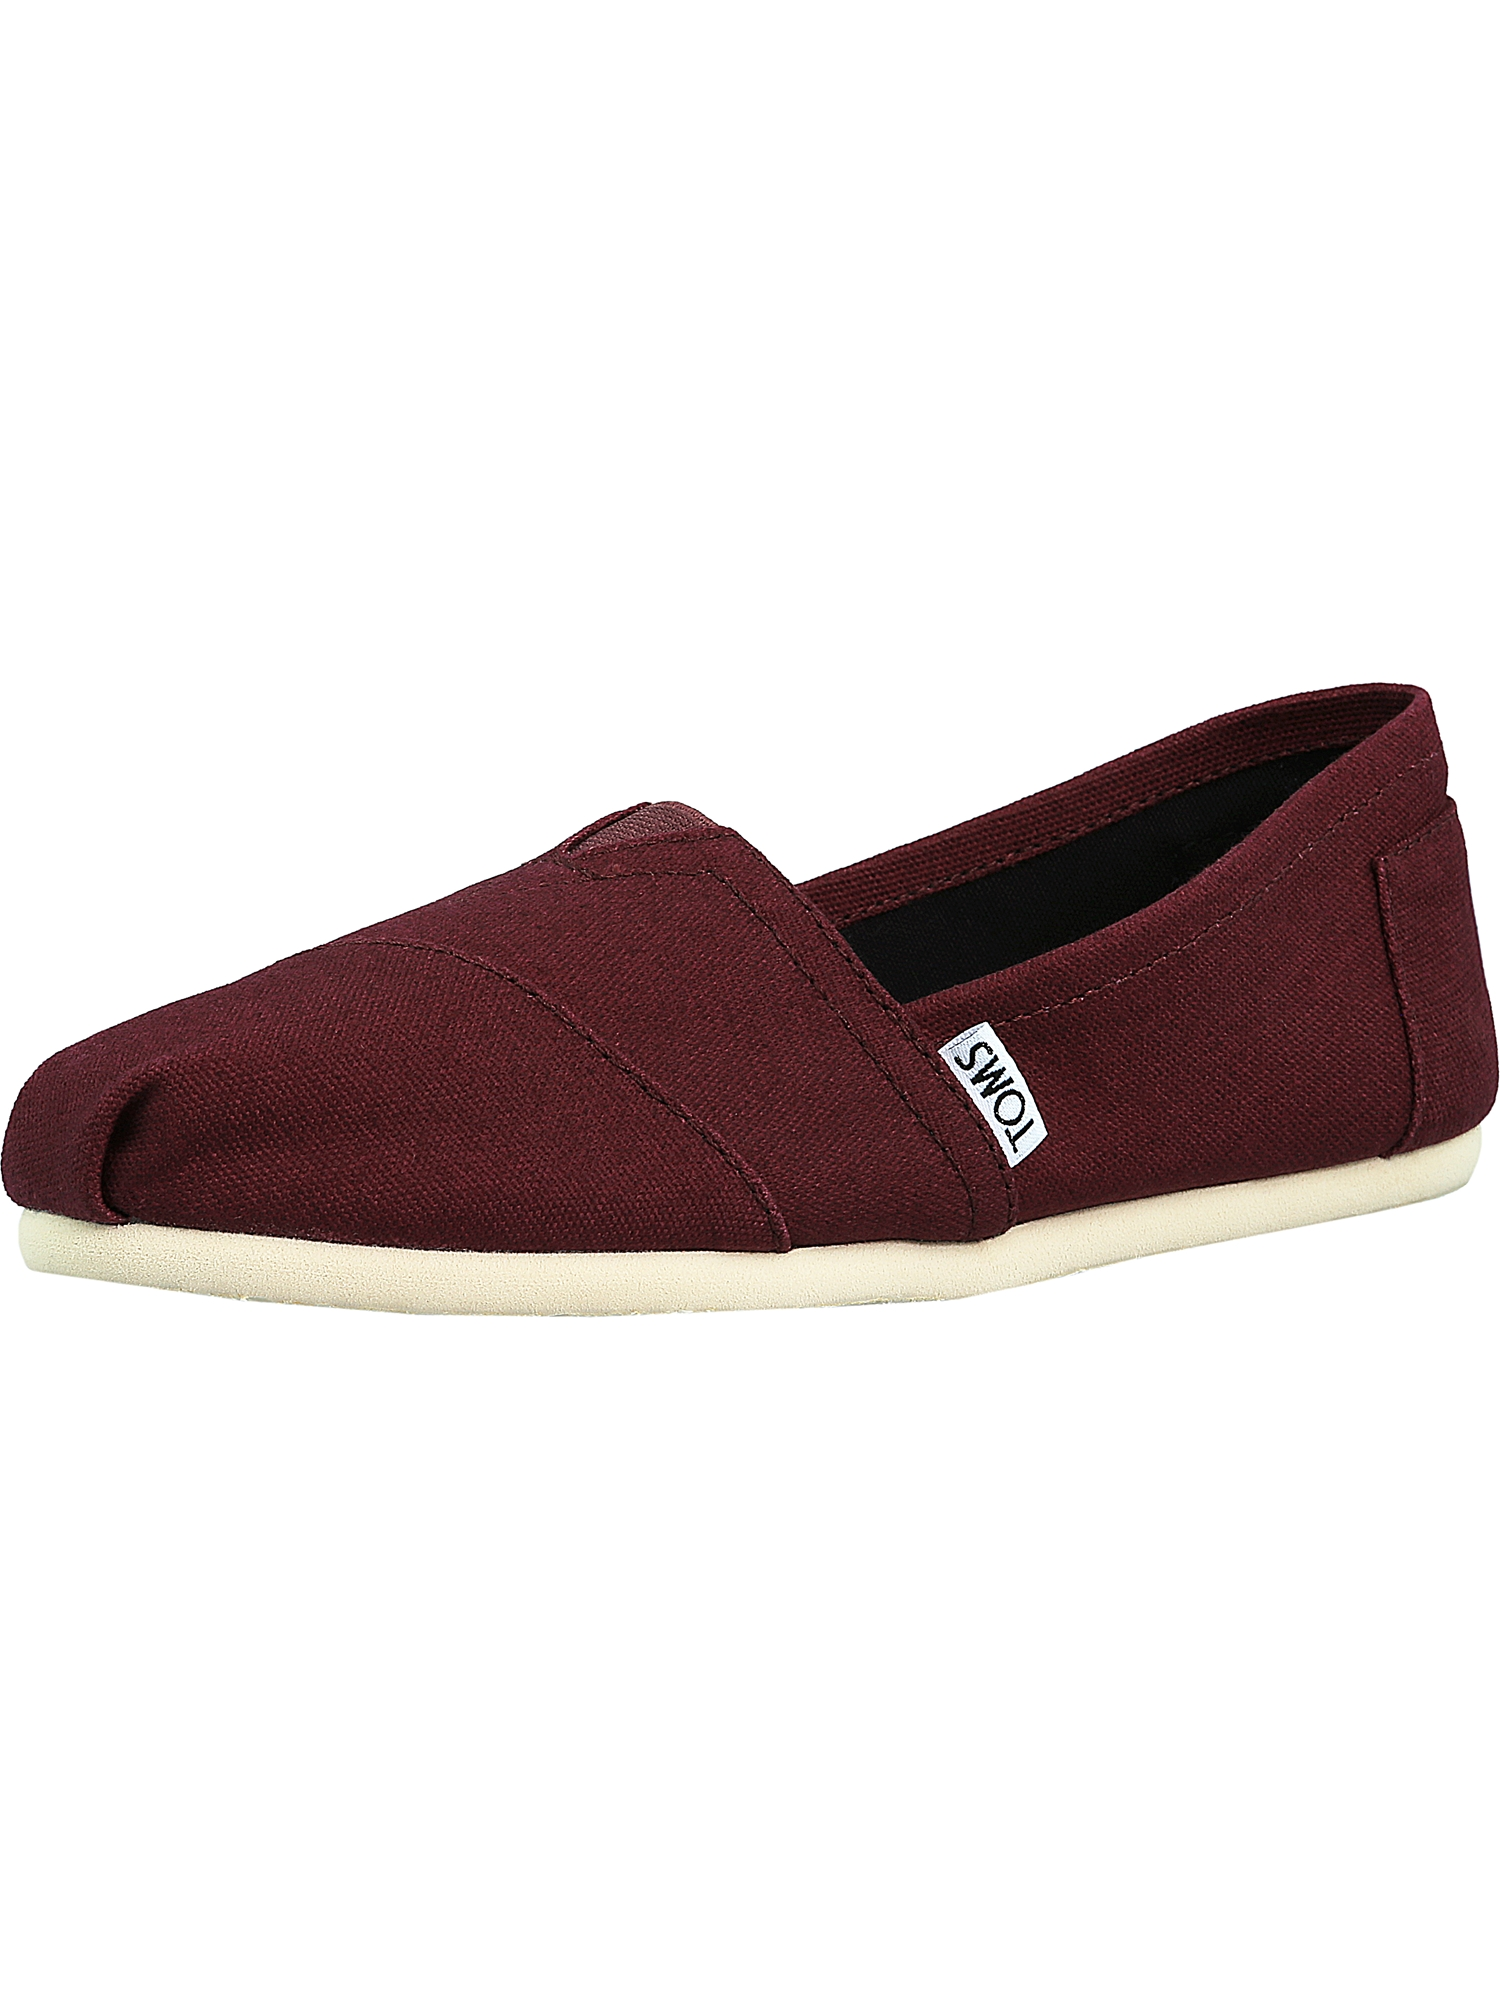 Red Girls High Fashion 5M 6 Sneaker Classic Canvas Ankle 1XcSryYzqP Mahogany xRfwZwn